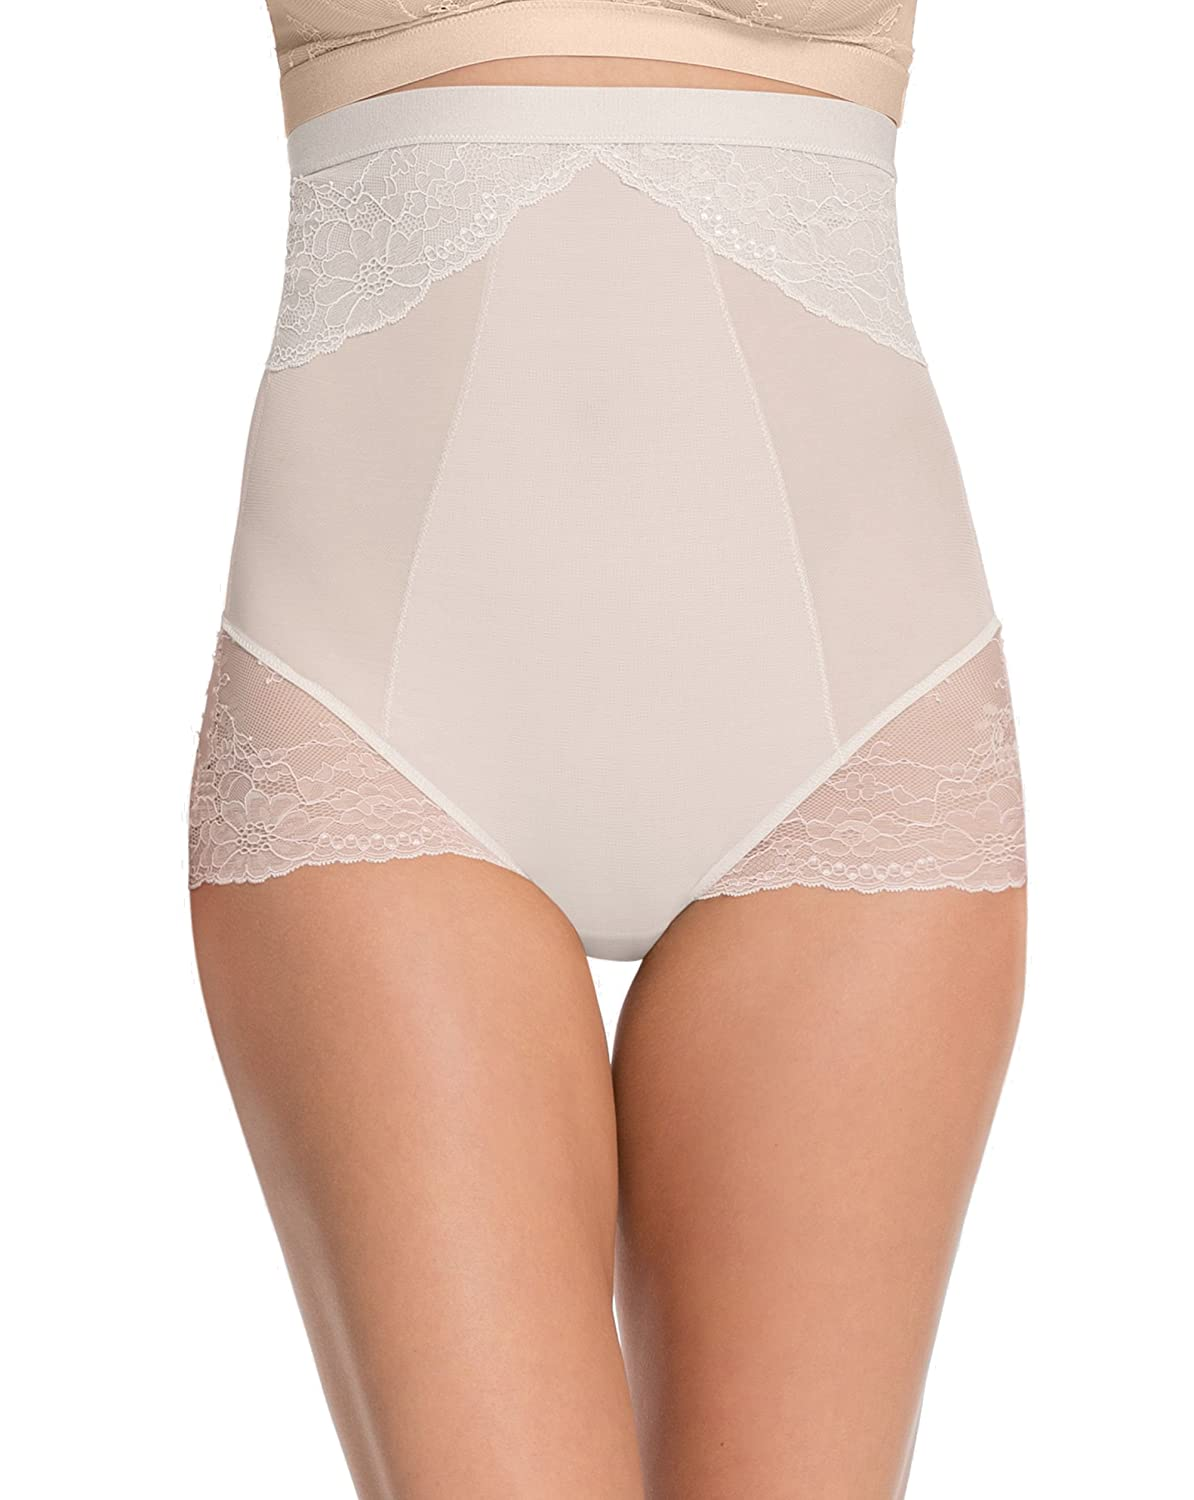 Spanx Damen Taillenslip Lace Collection High Waisted Brief 10121R